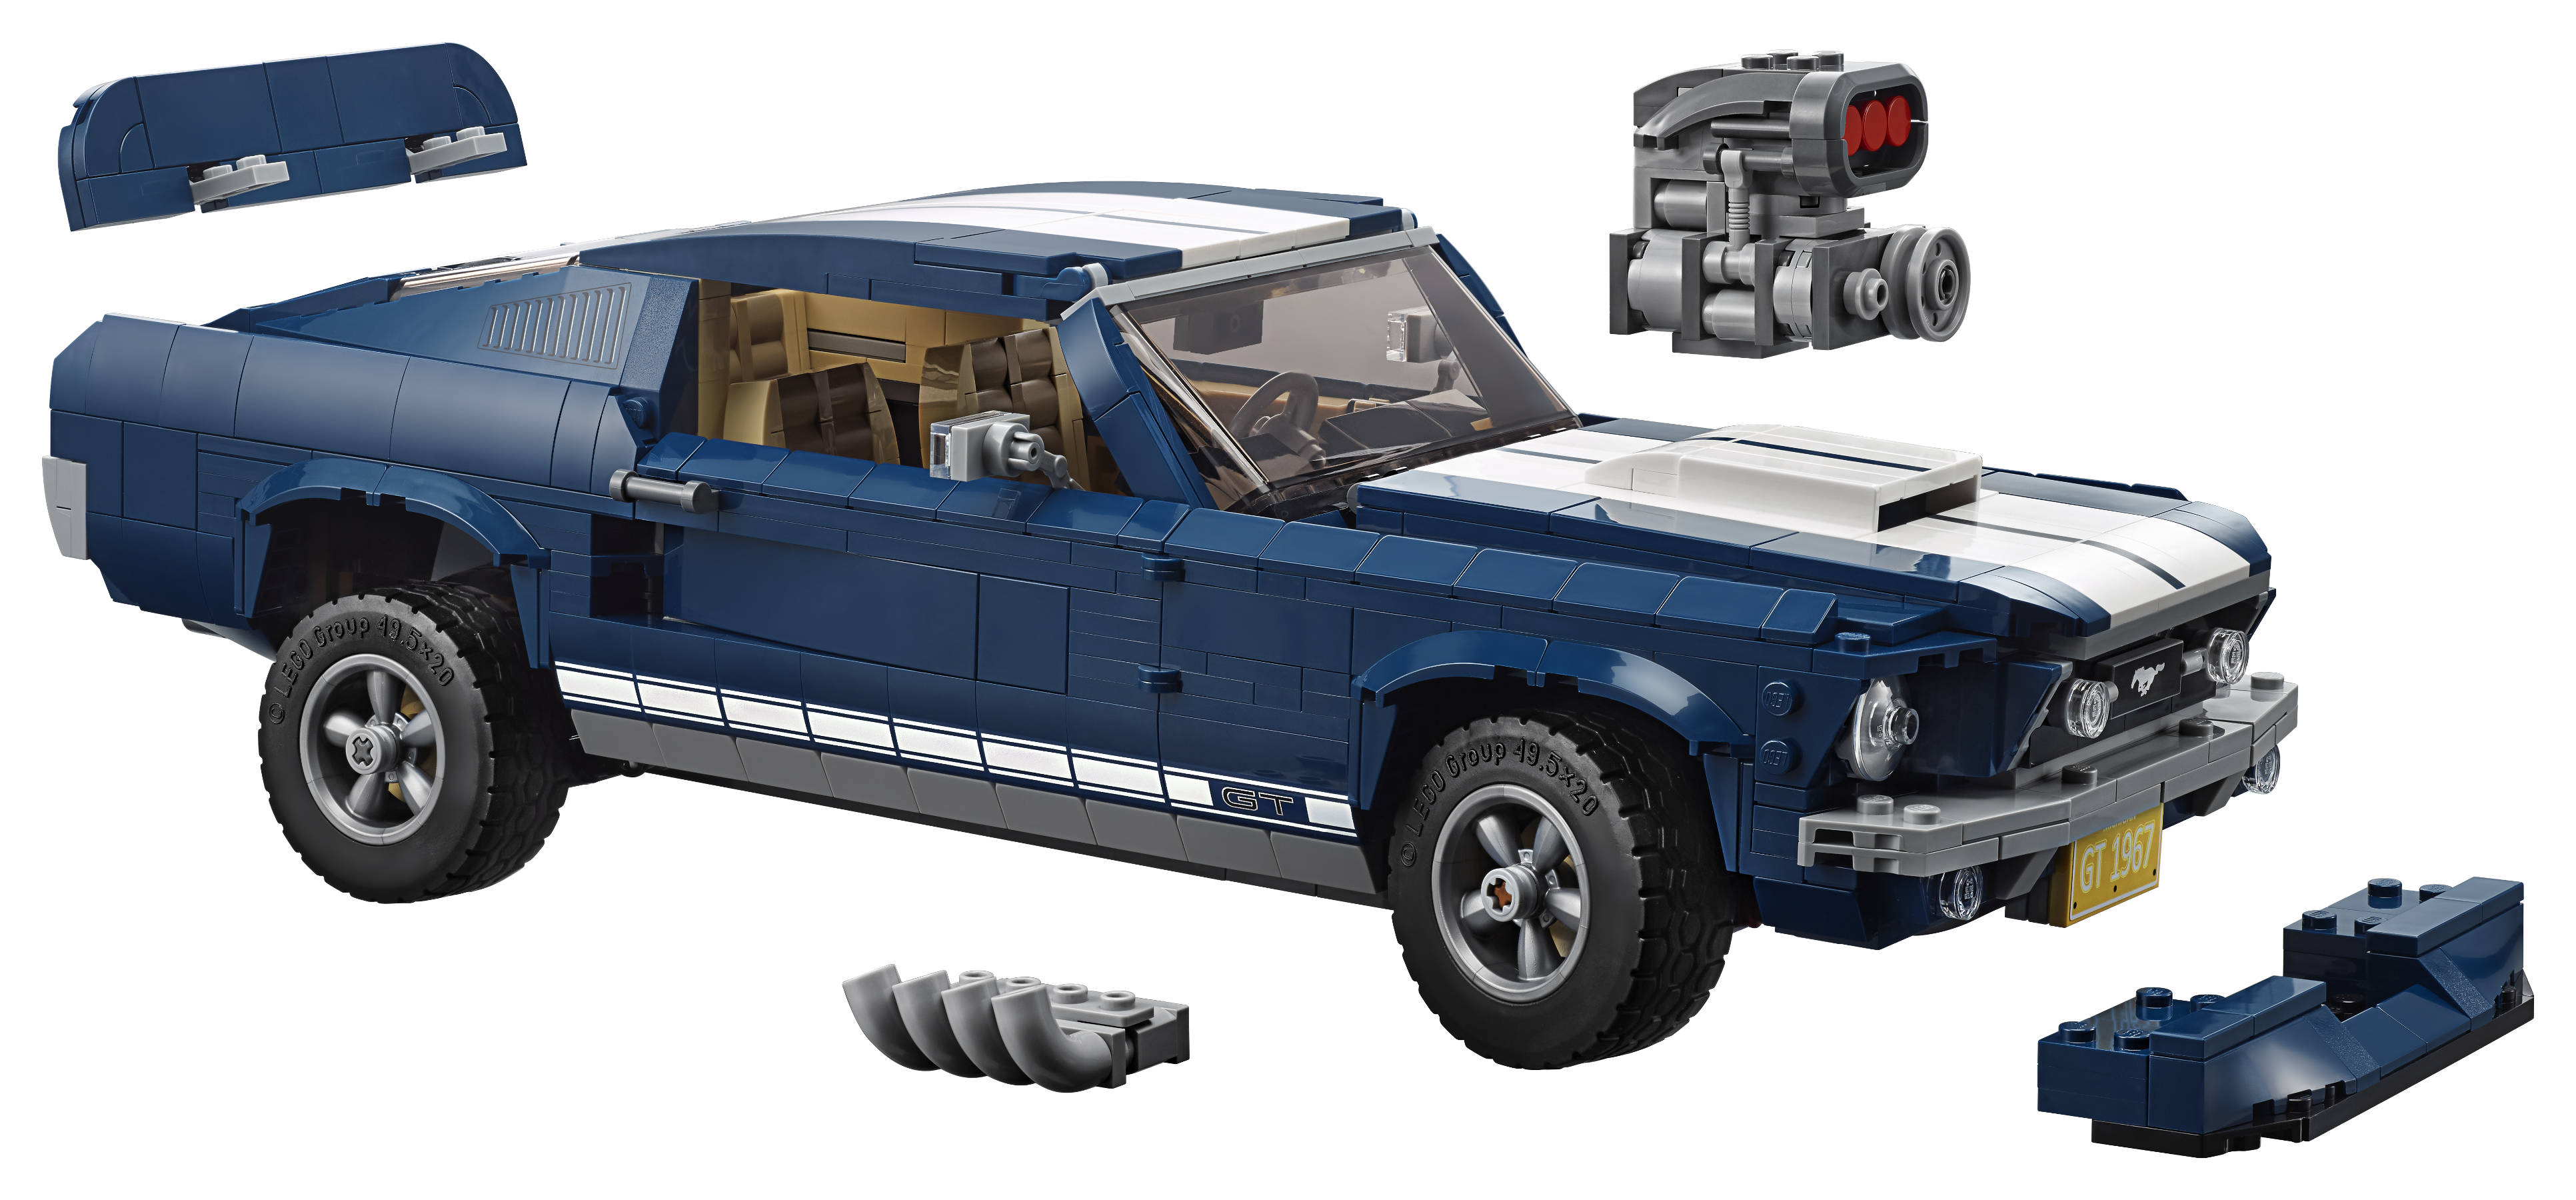 Lego Announces 10265 Ford Mustang Fbtb